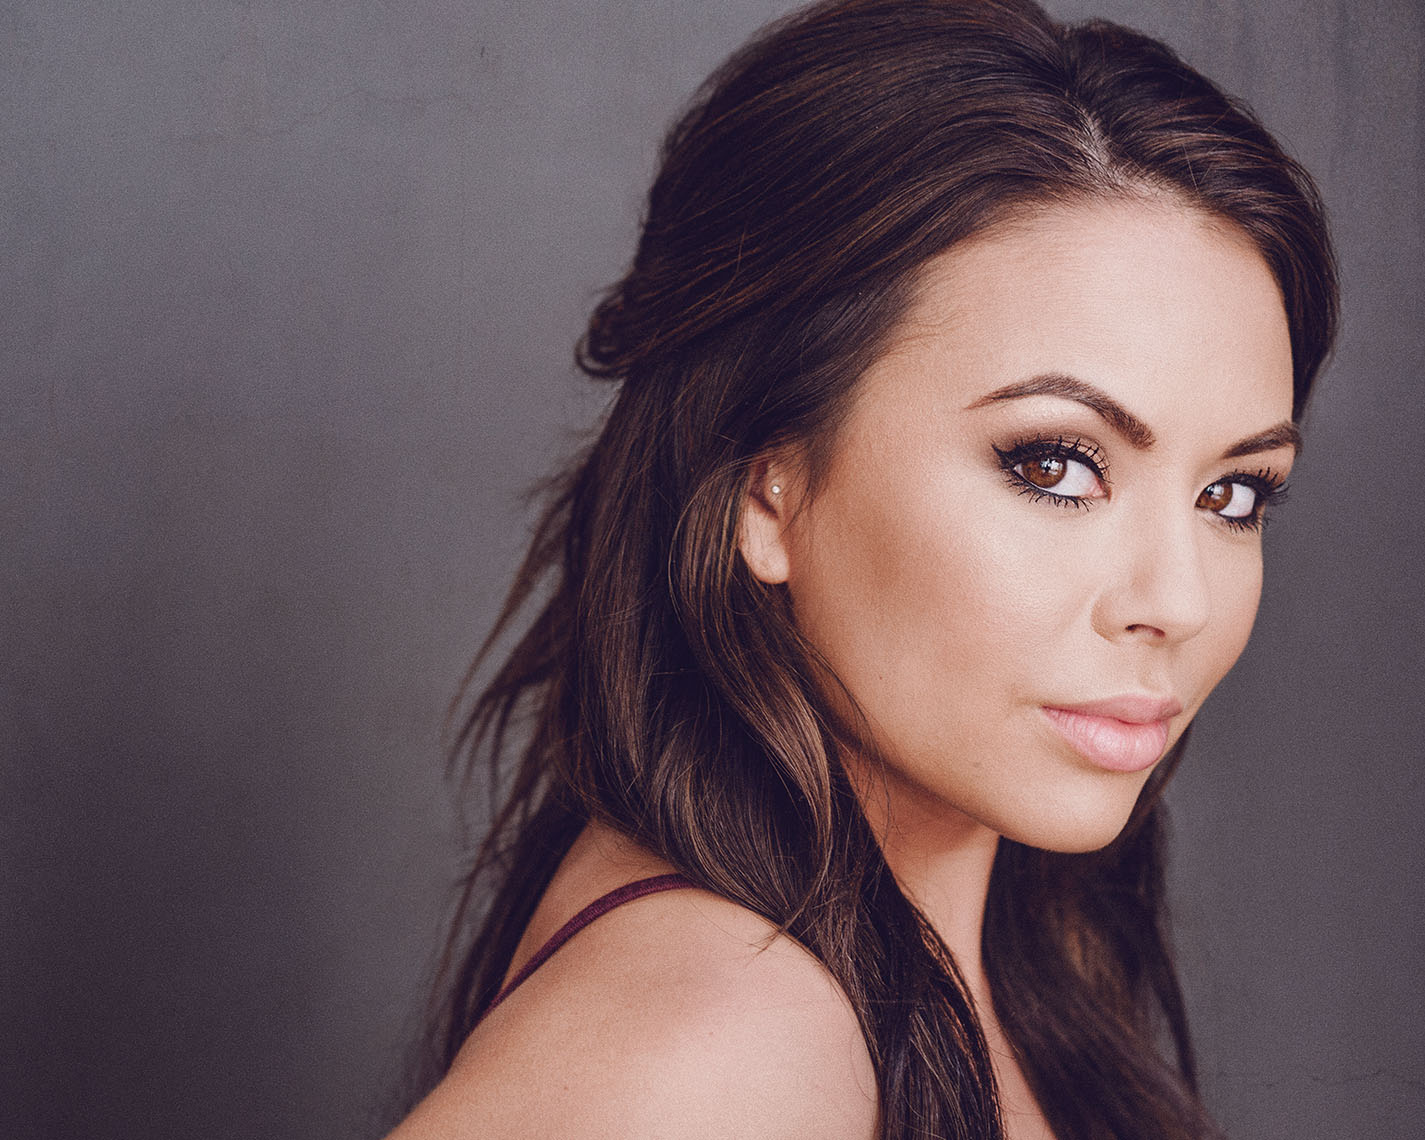 Janel Parrish photographed by the best headshot photographer in Los Angeles. Best known for Pretty Little Liars.